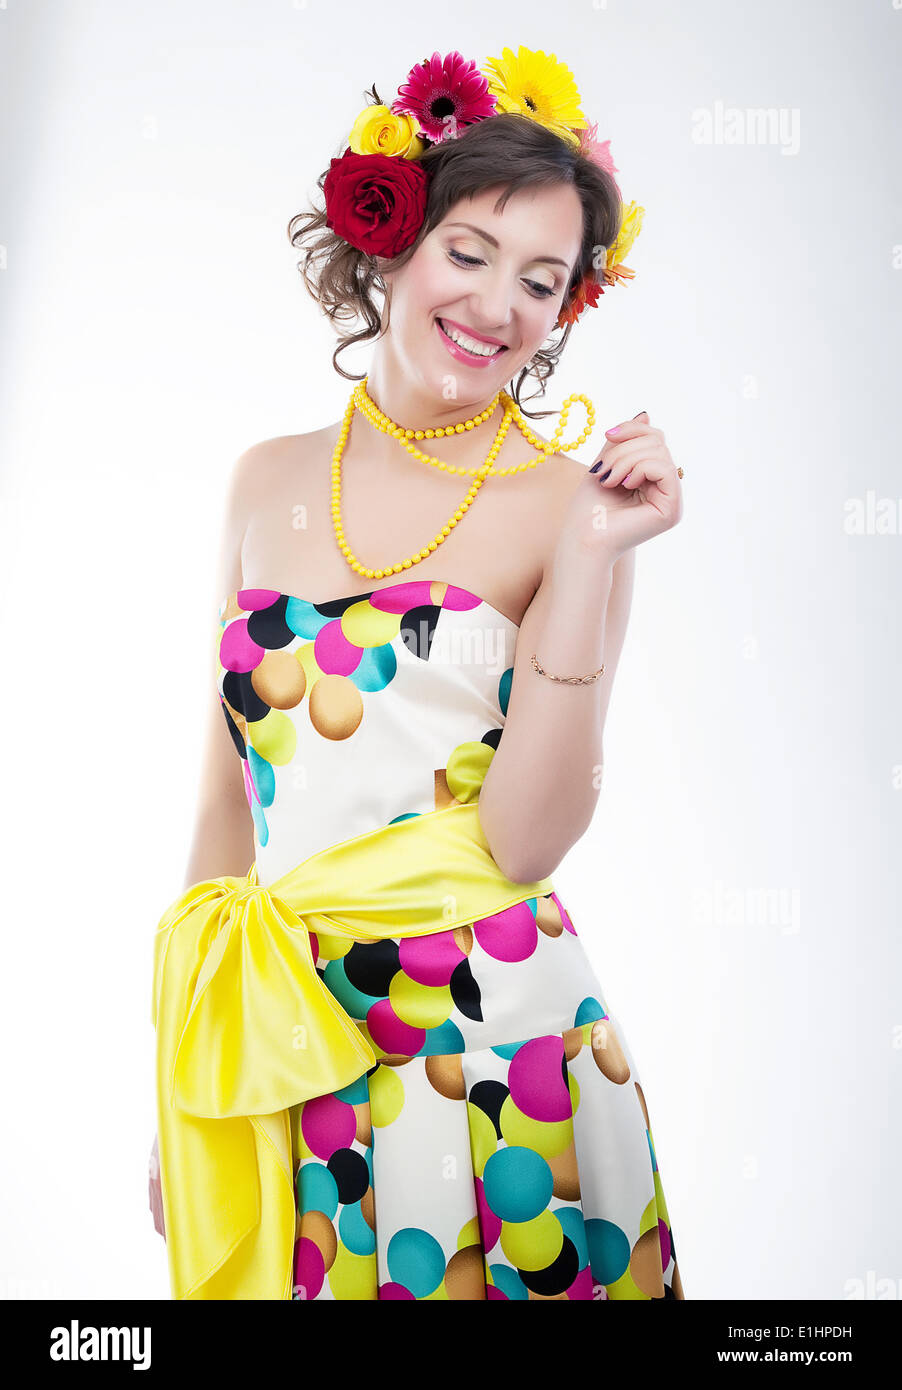 Beauty - vernal happy young woman in colorful bright dress. Series of photos - Stock Image